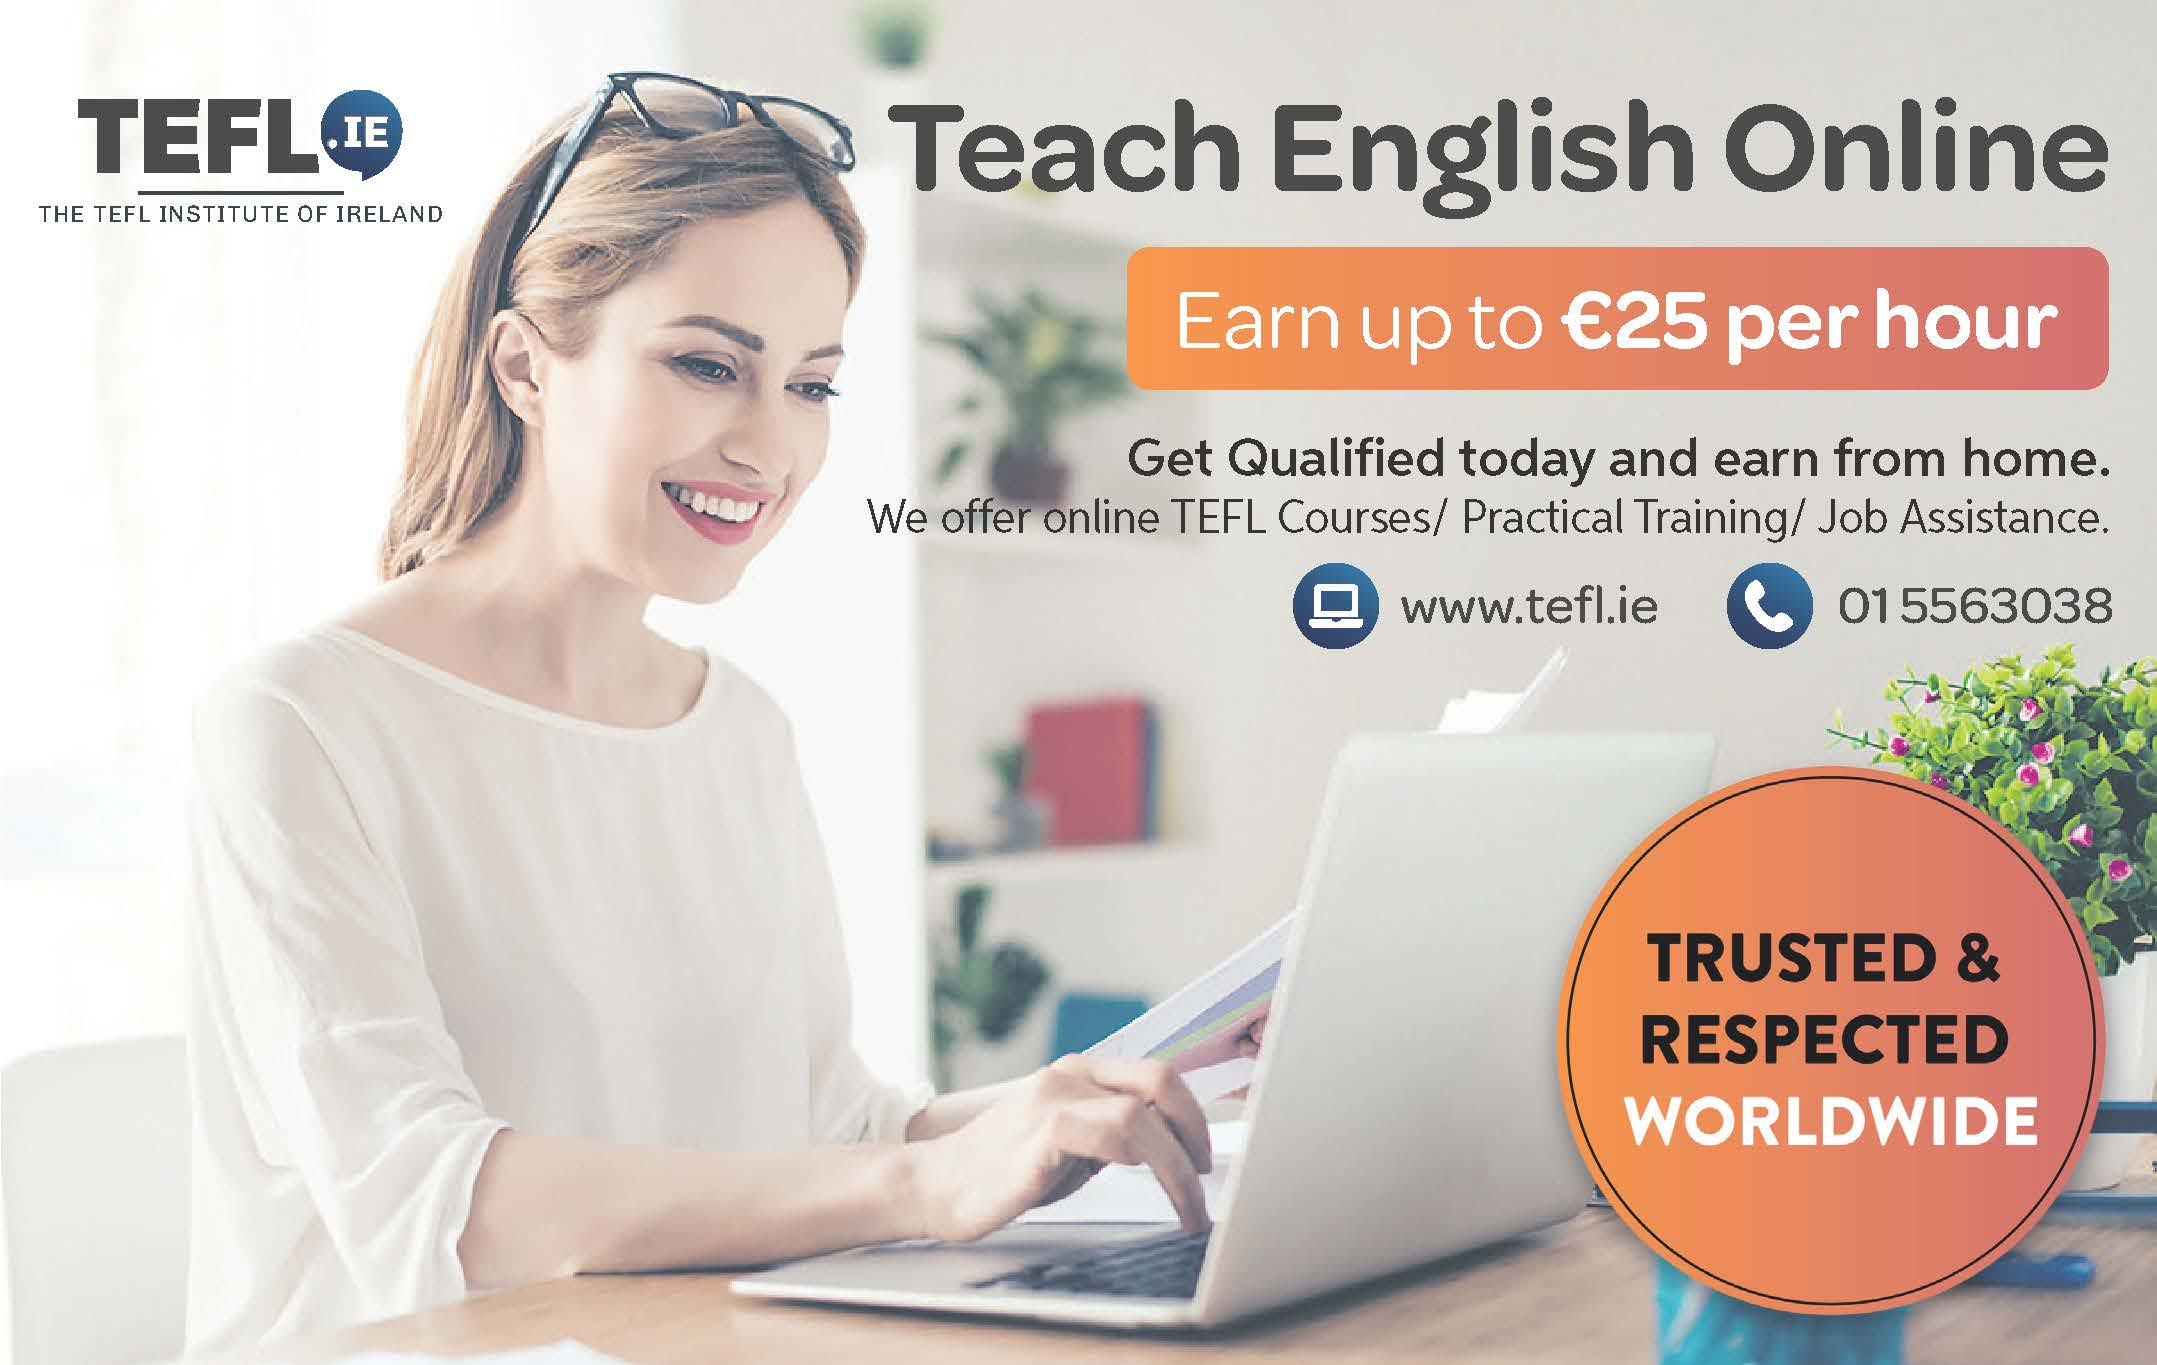 Earn up to €25 per hour by teaching English online